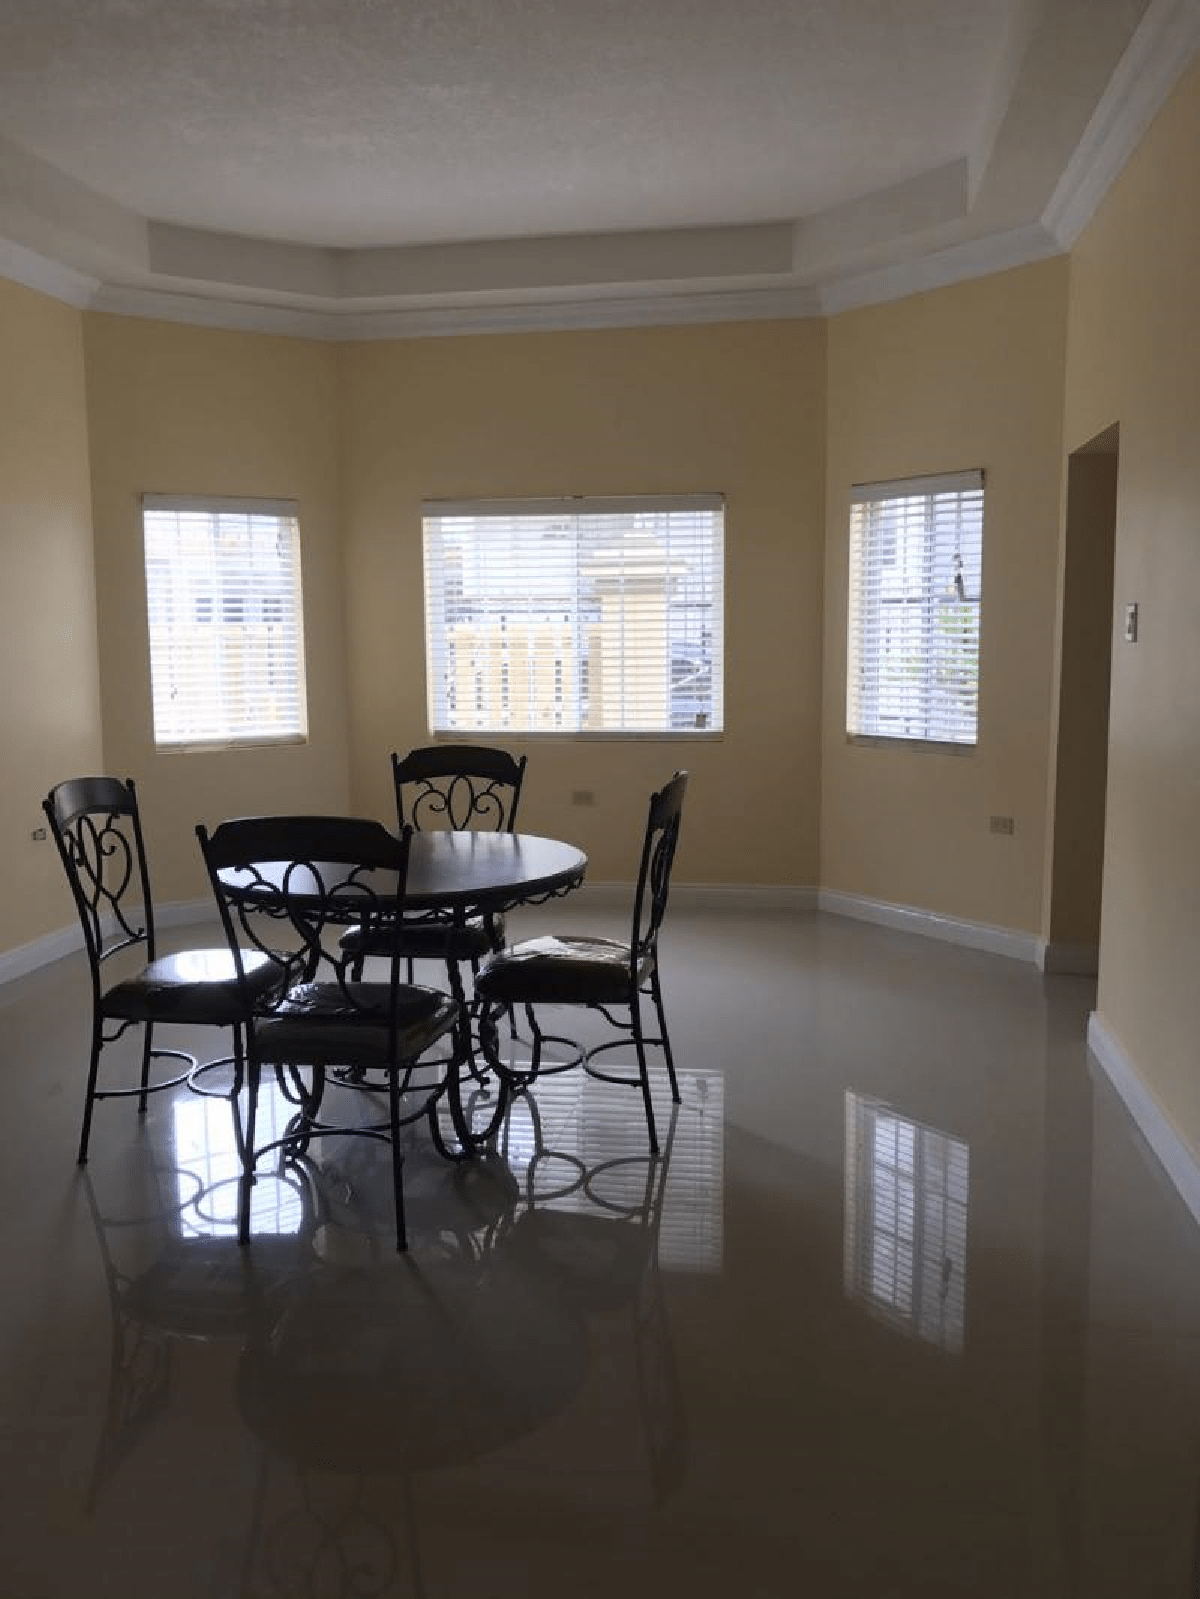 3 BEDROOM HOUSE FOR RENT in MANDEVIILE  Jamaica